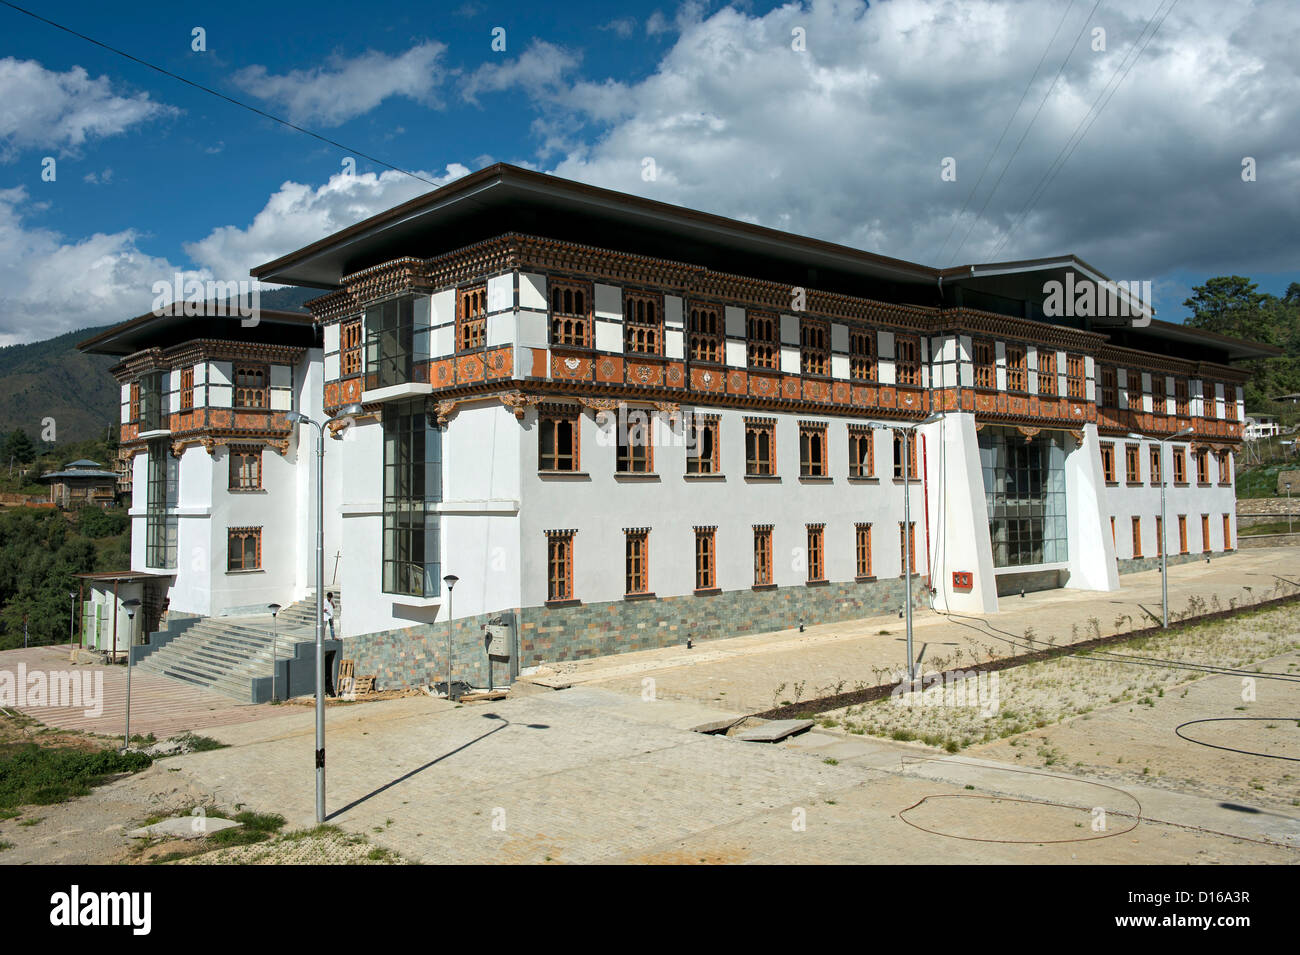 Headquarters of the the Thimphu TechPark, Thimphu, Bhutan - Stock Image